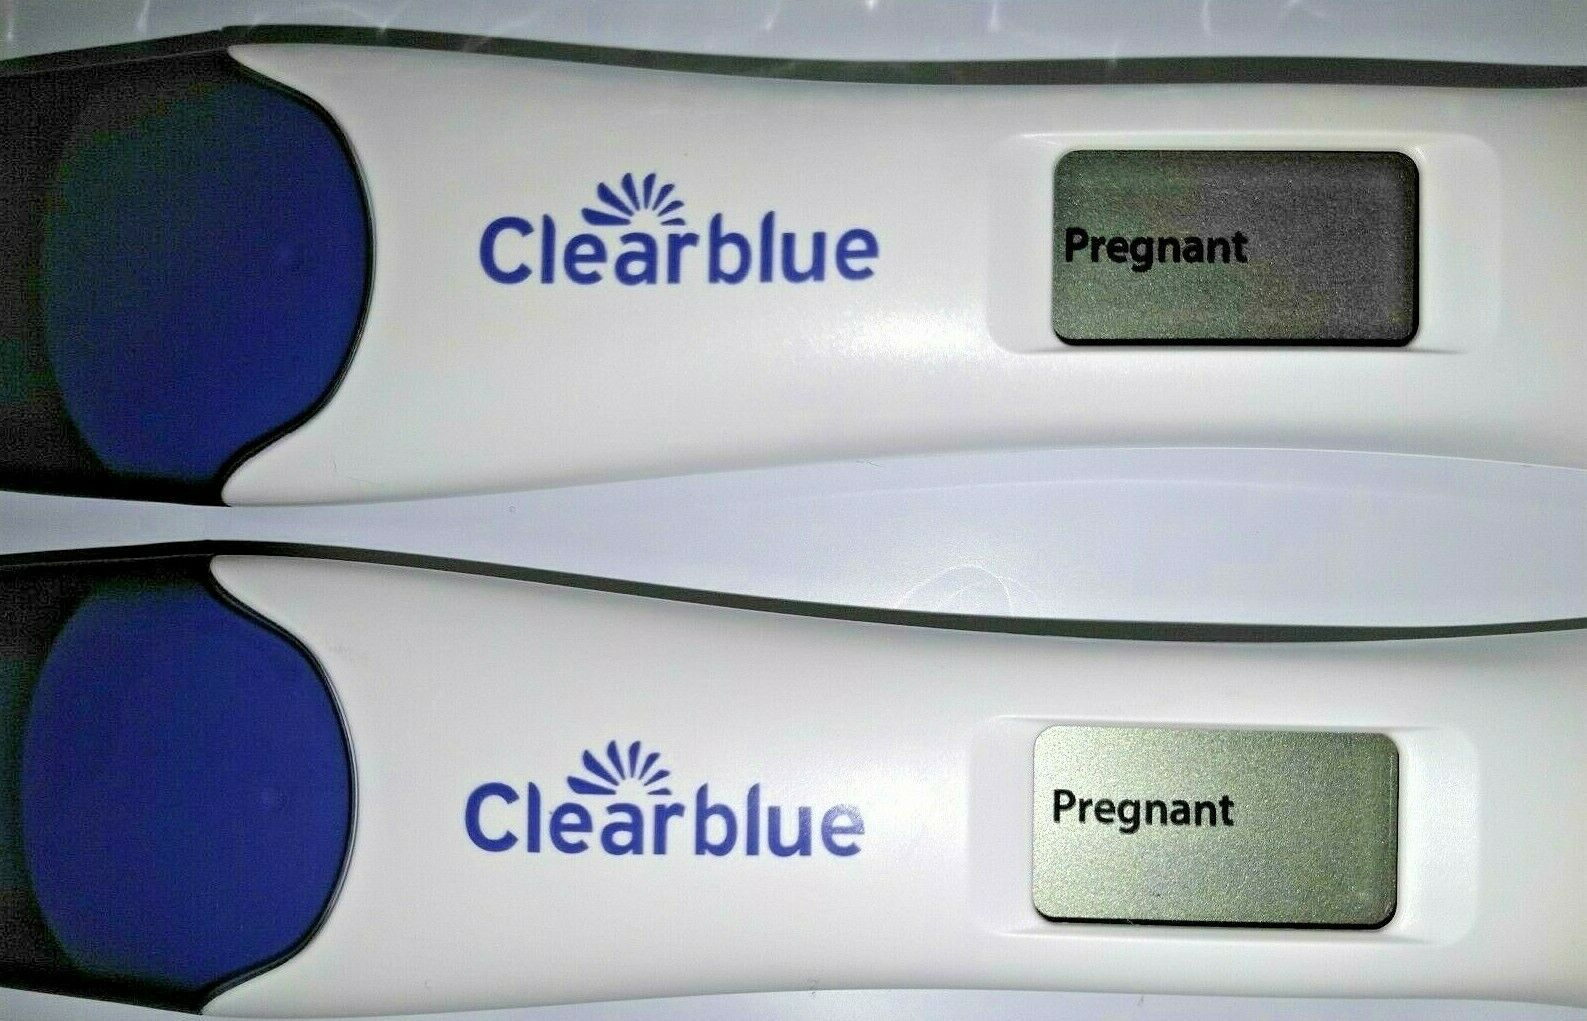 2 Prank Fake Pregnancy Test Tests Positive Joke Gag Tests Funny